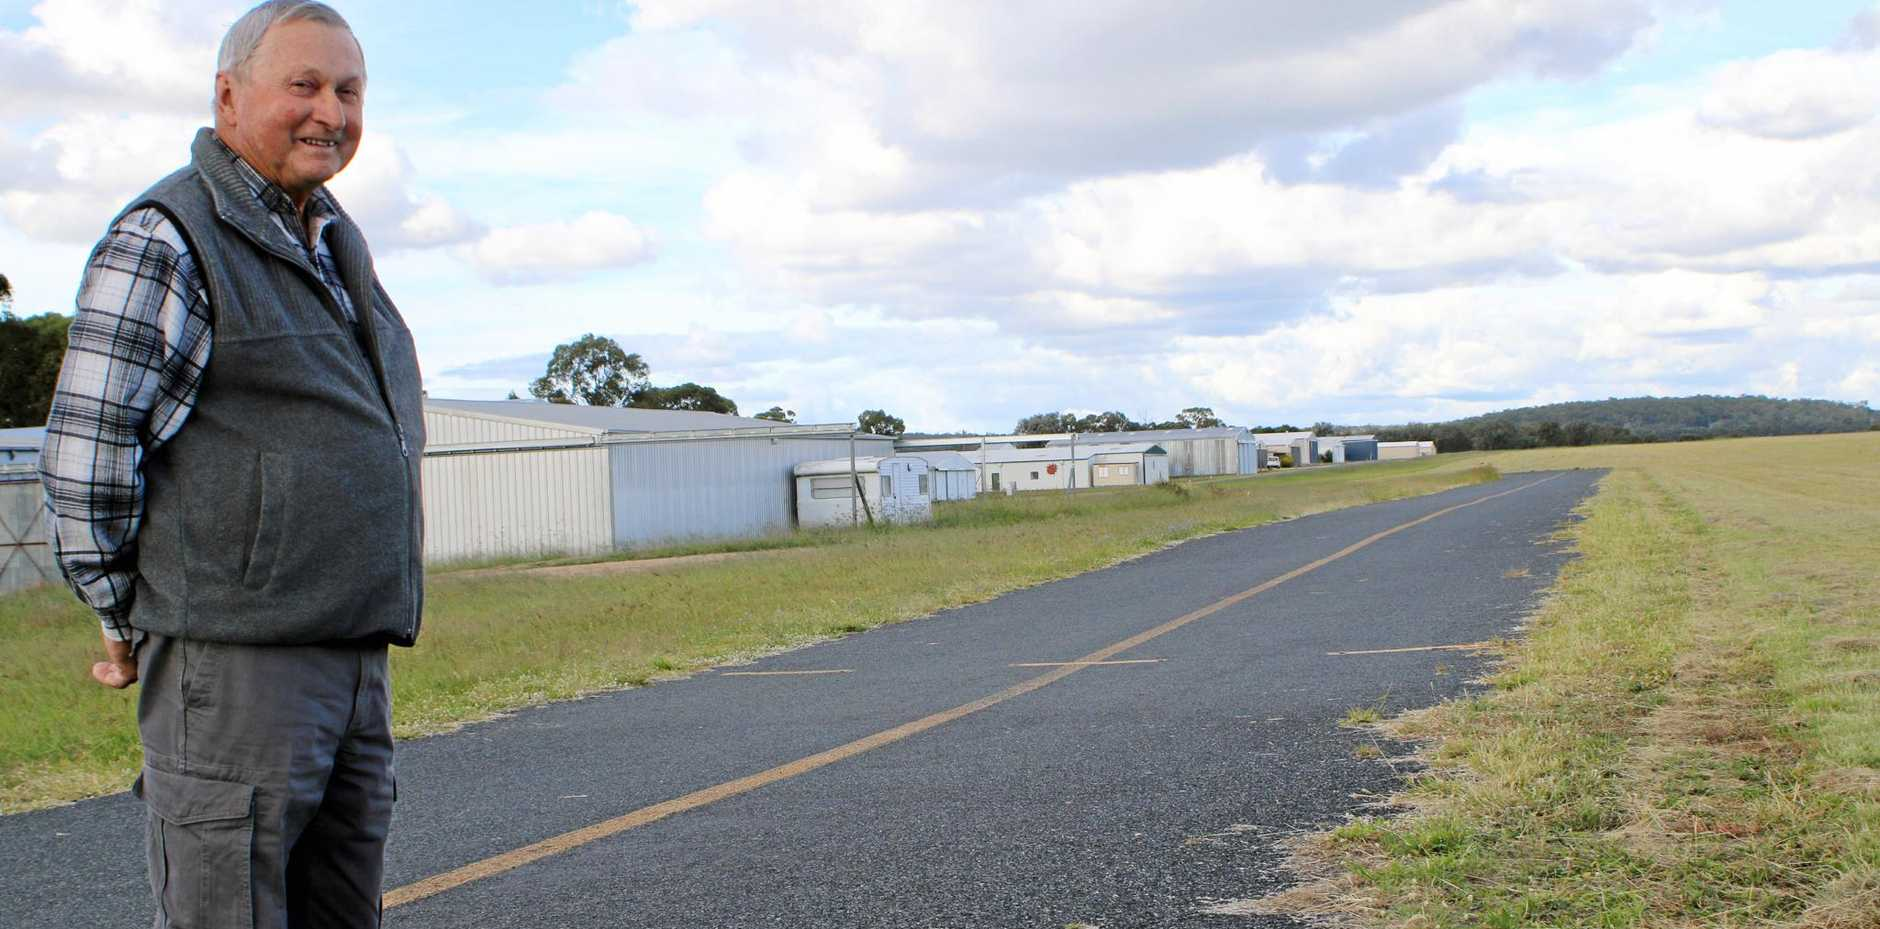 LIFT OFF: Long-time member of the Warwick Gliding Club Bill Wilkinson says conversations are continuing with Southern Downs Regional Council about the need for a new taxiway.